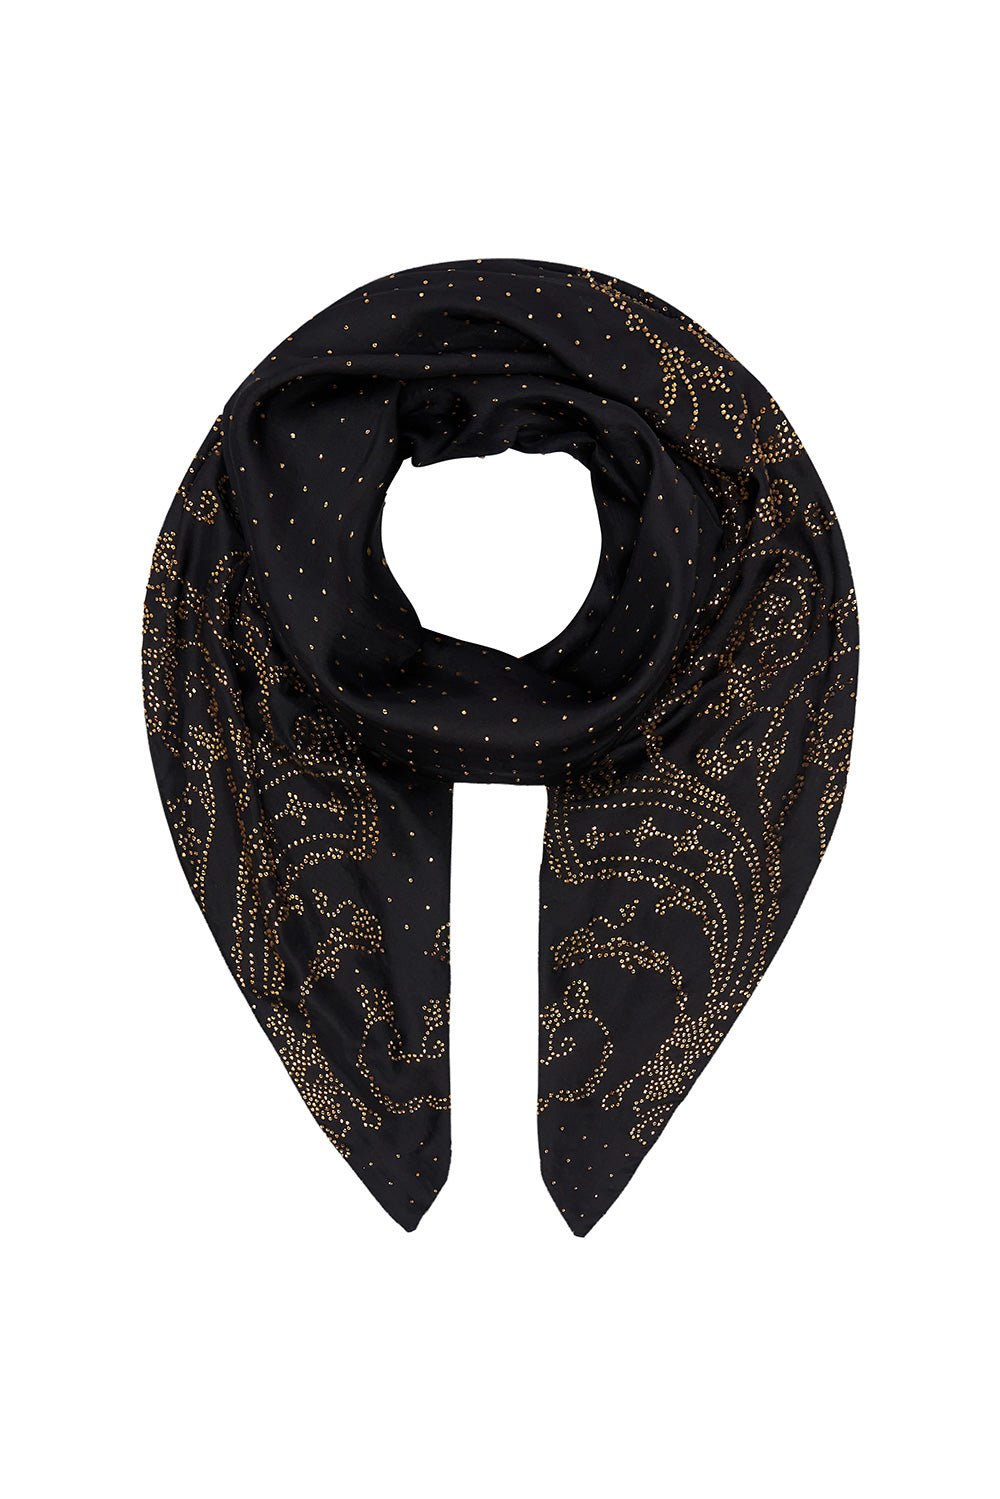 LARGE SQUARE SCARF LUXE BLACK